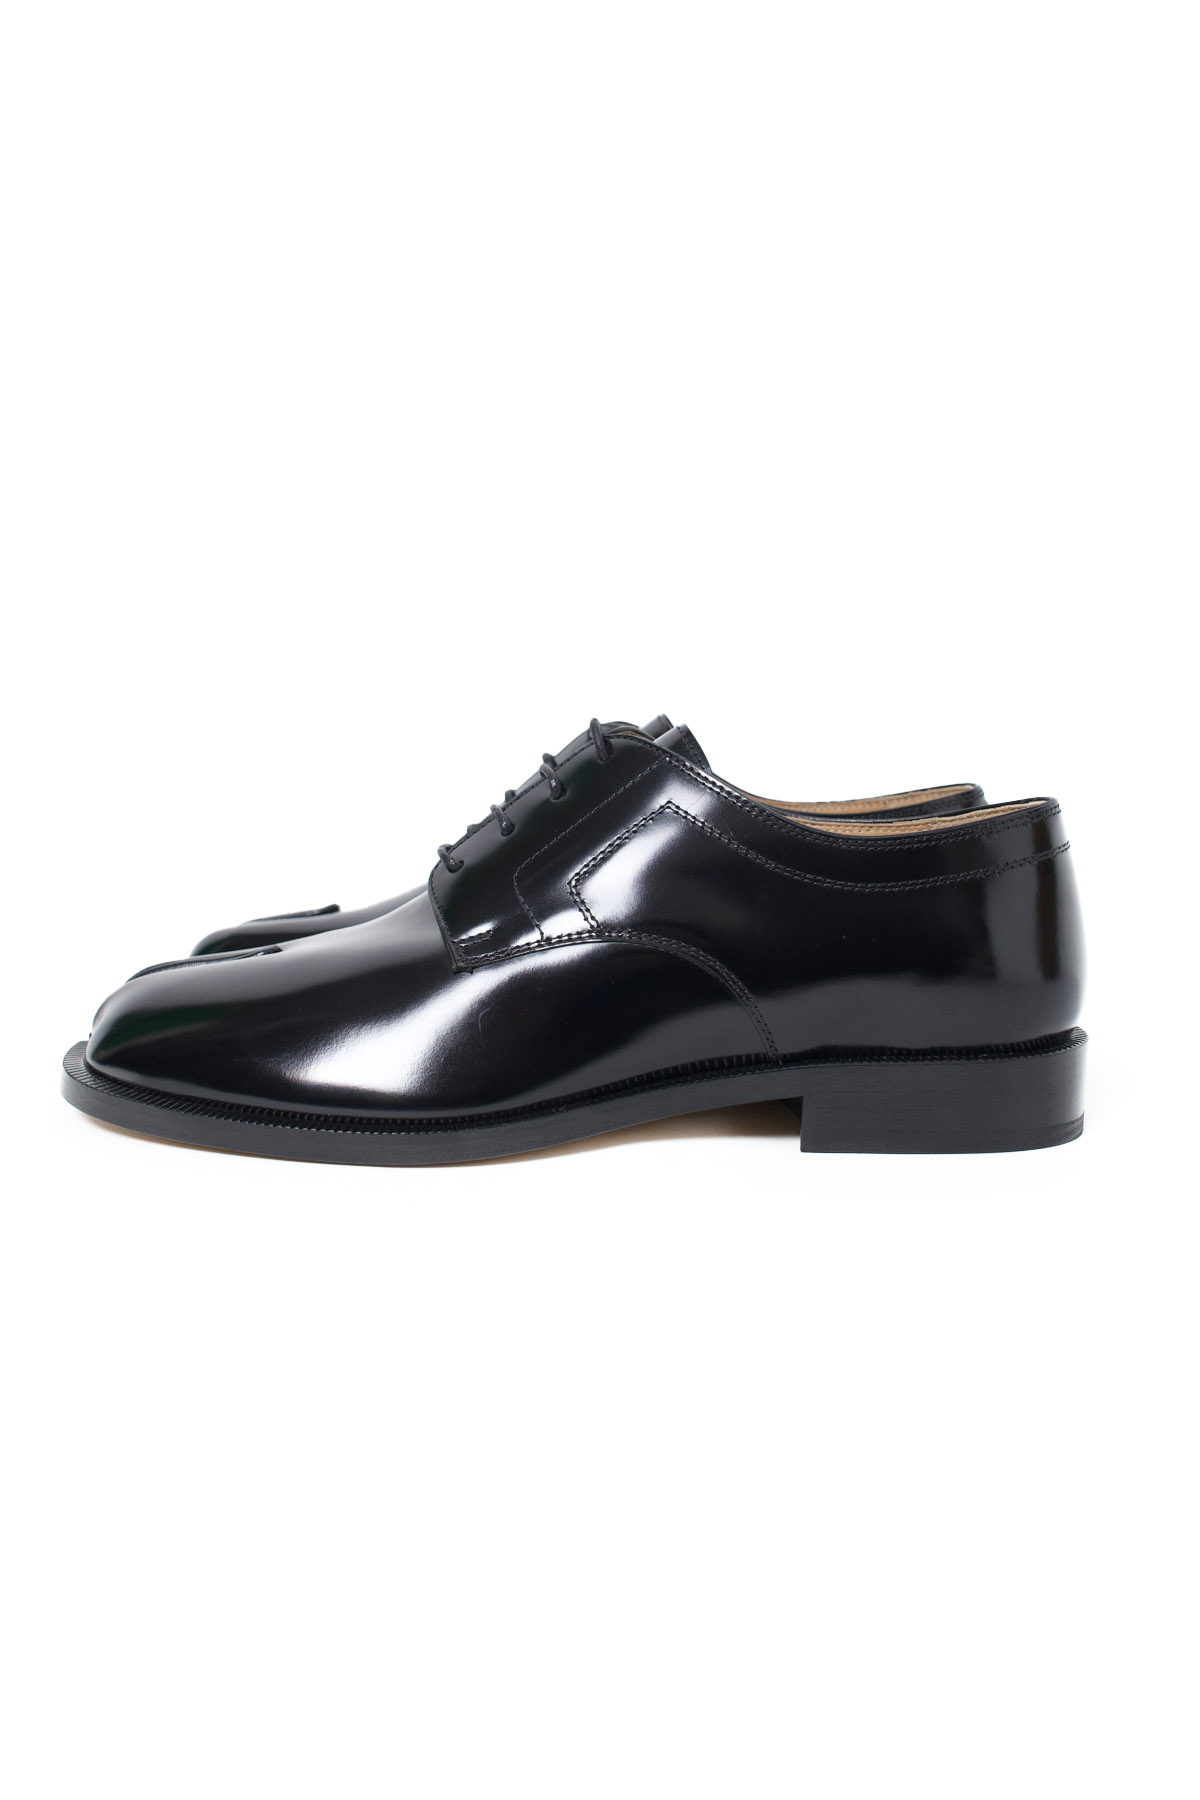 Tabi Lace Up Shoes[2021SS]